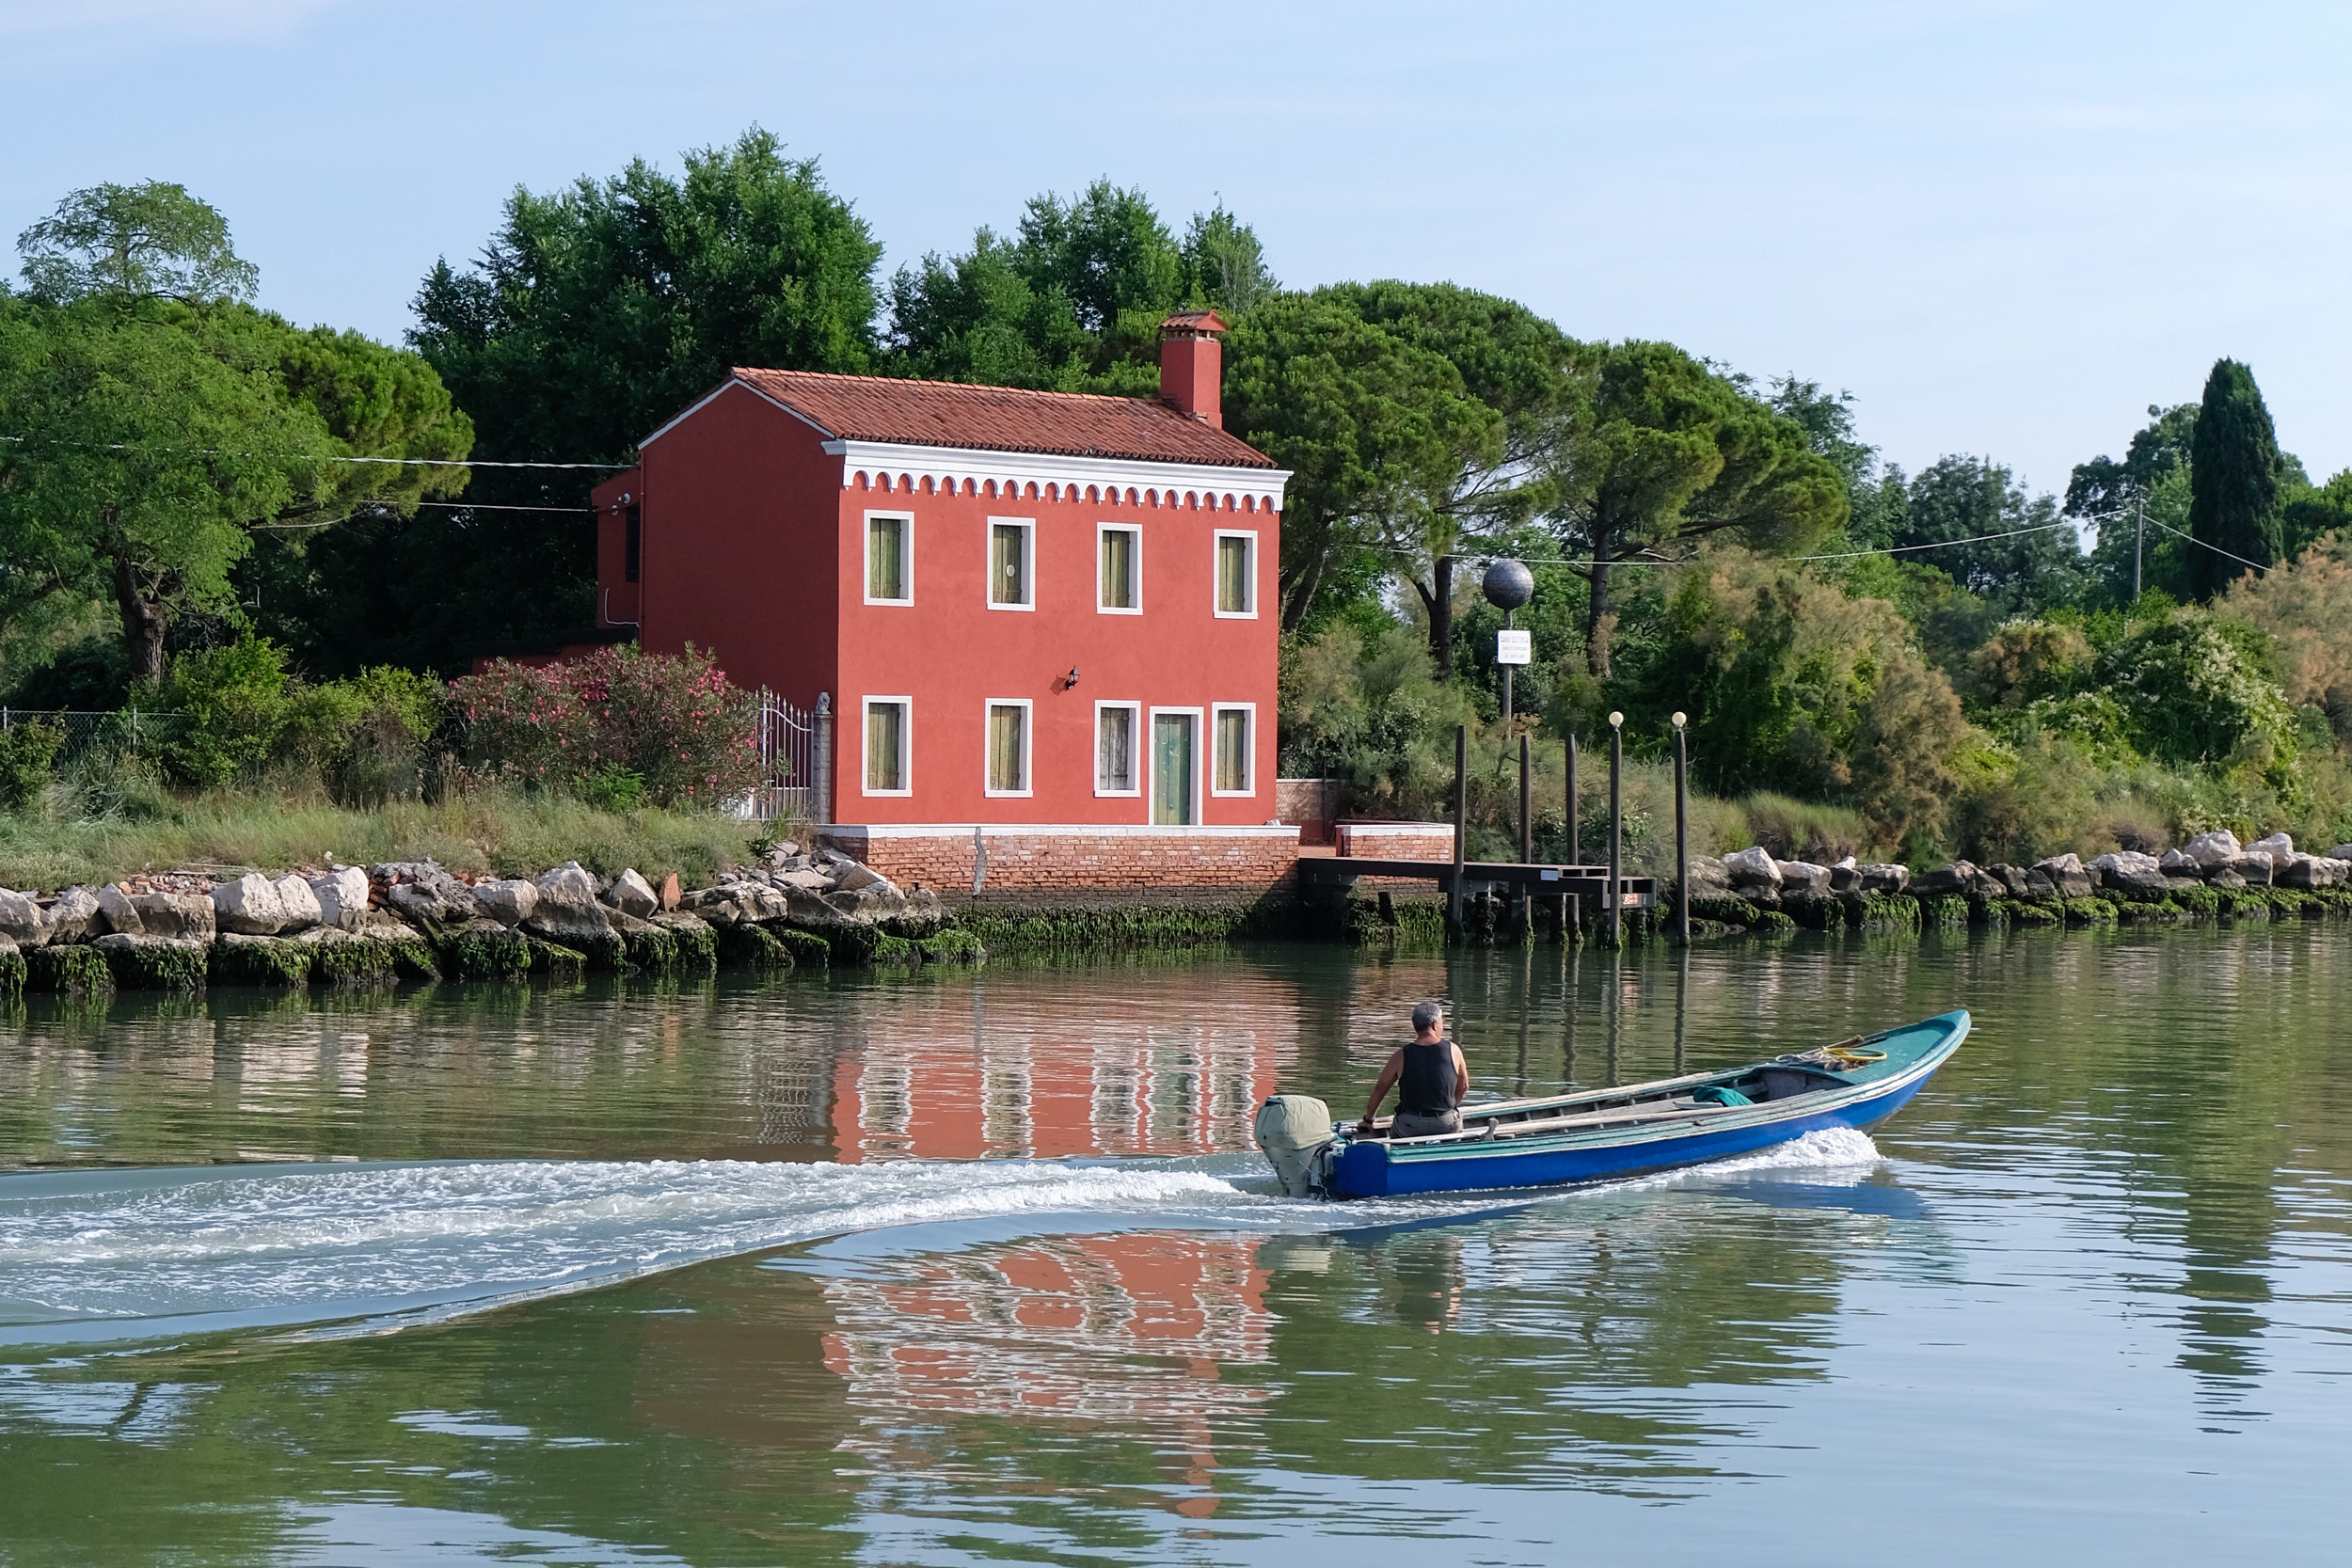 Experience another side o of venice: Burano and Mazzorbo - June 18th, 2018